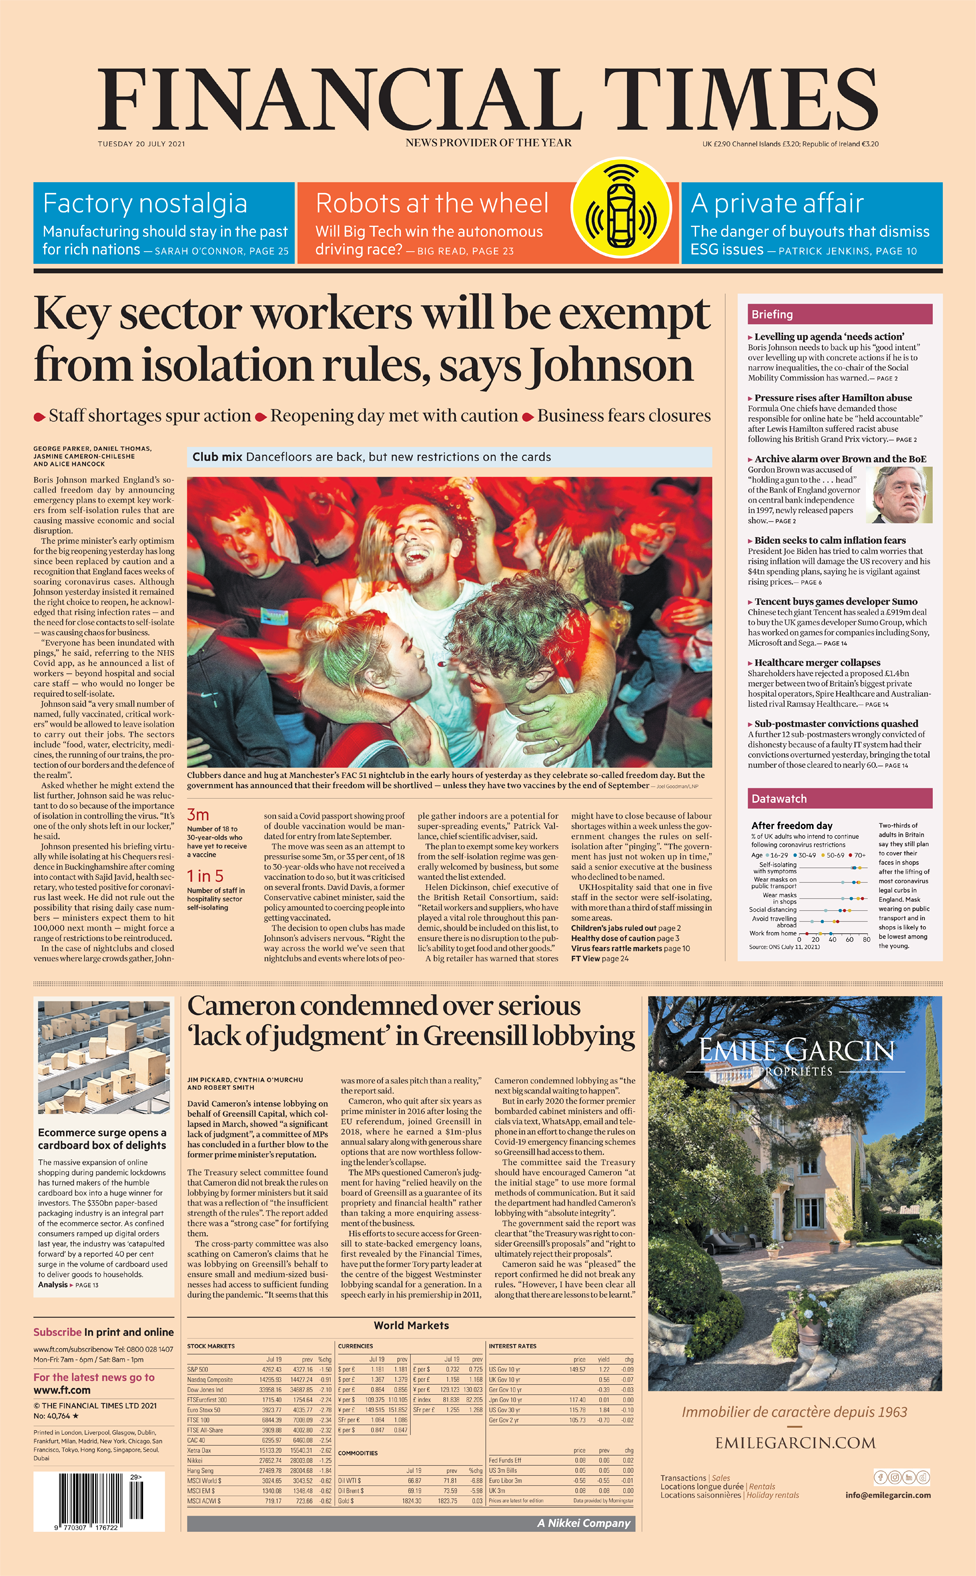 Financial Times front page 20/07/21